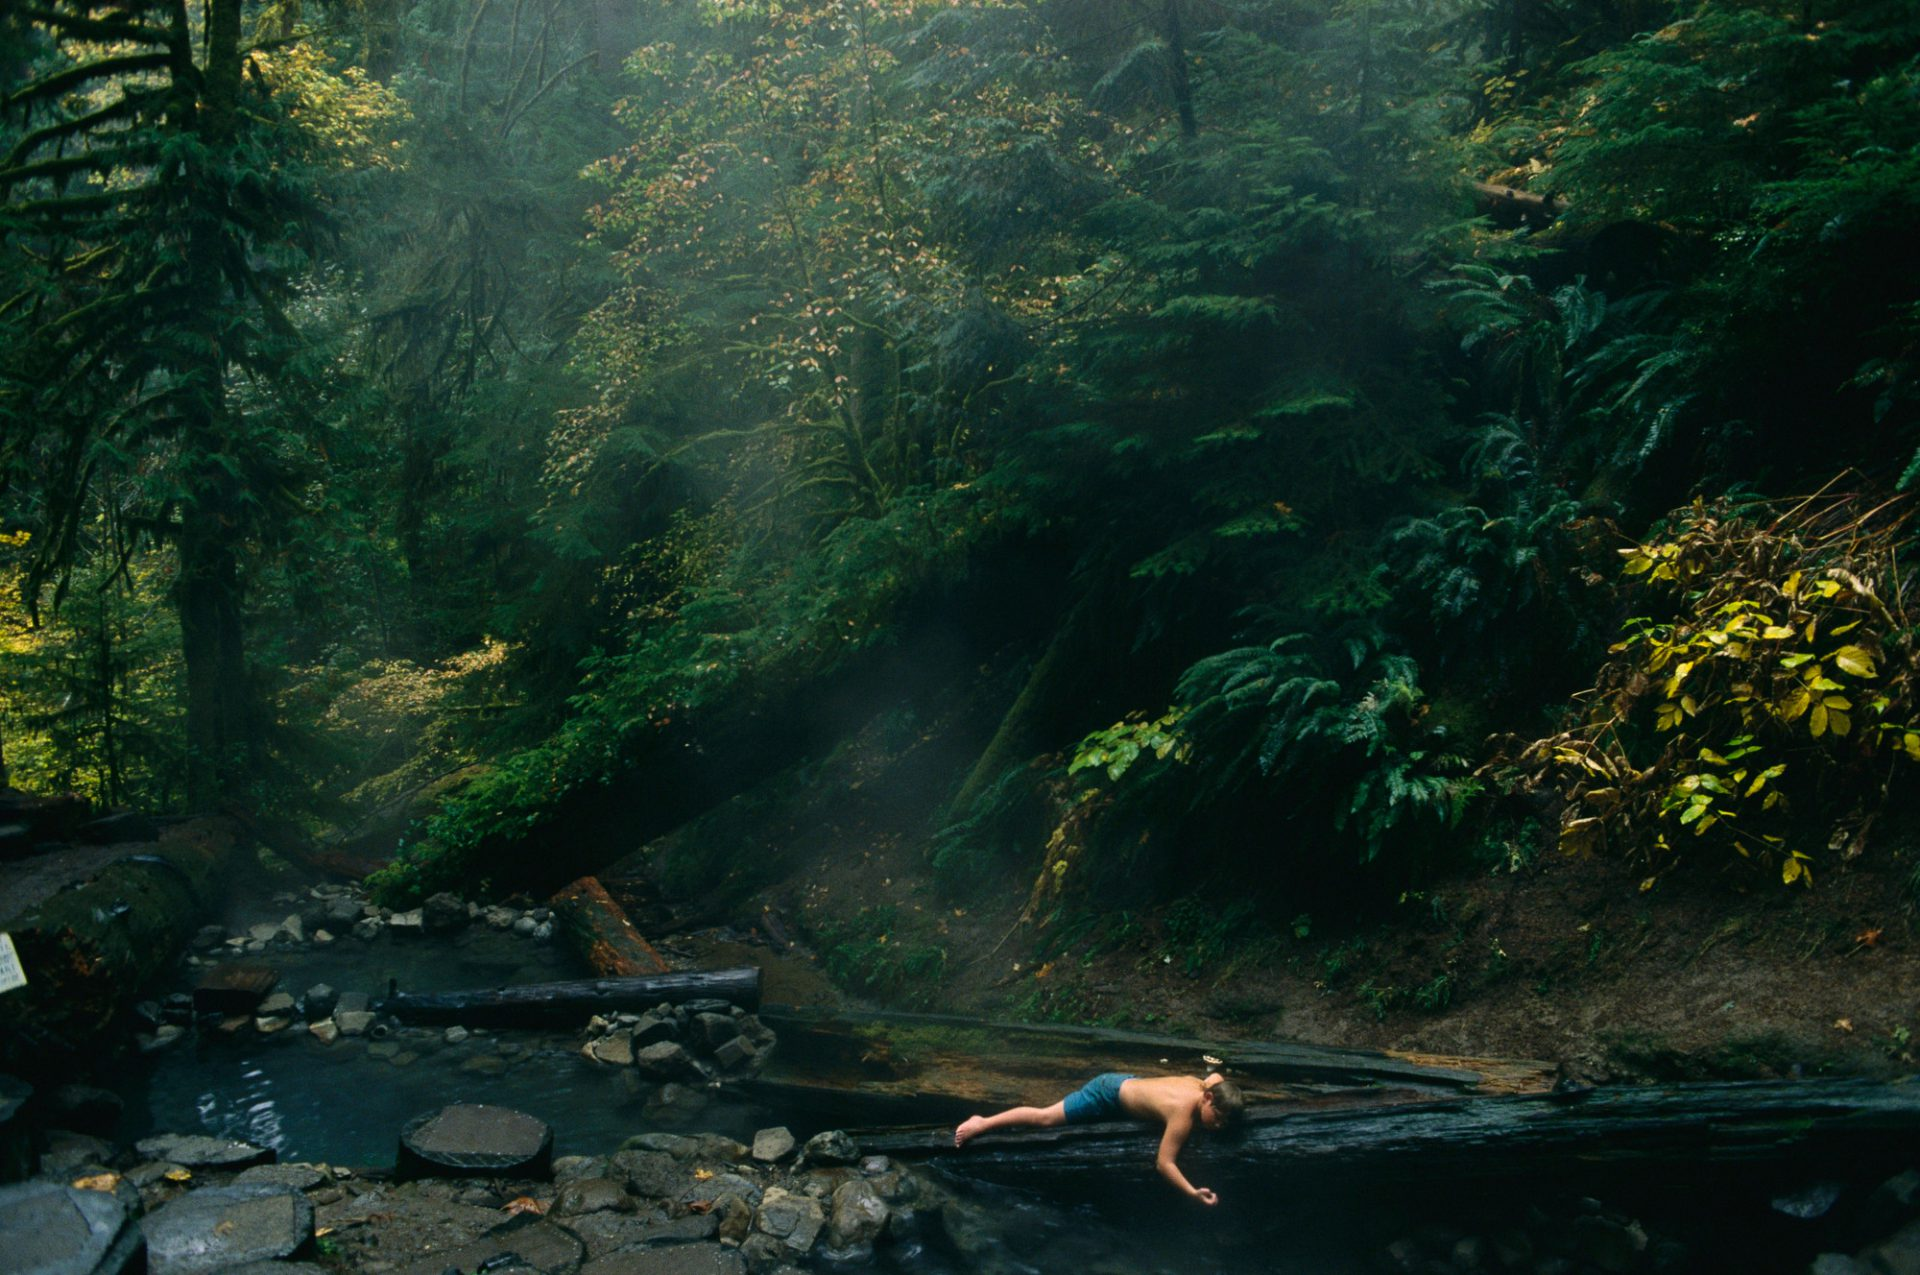 Photo: A young boy plays in a stream in Willamette National Forest, Oregon.